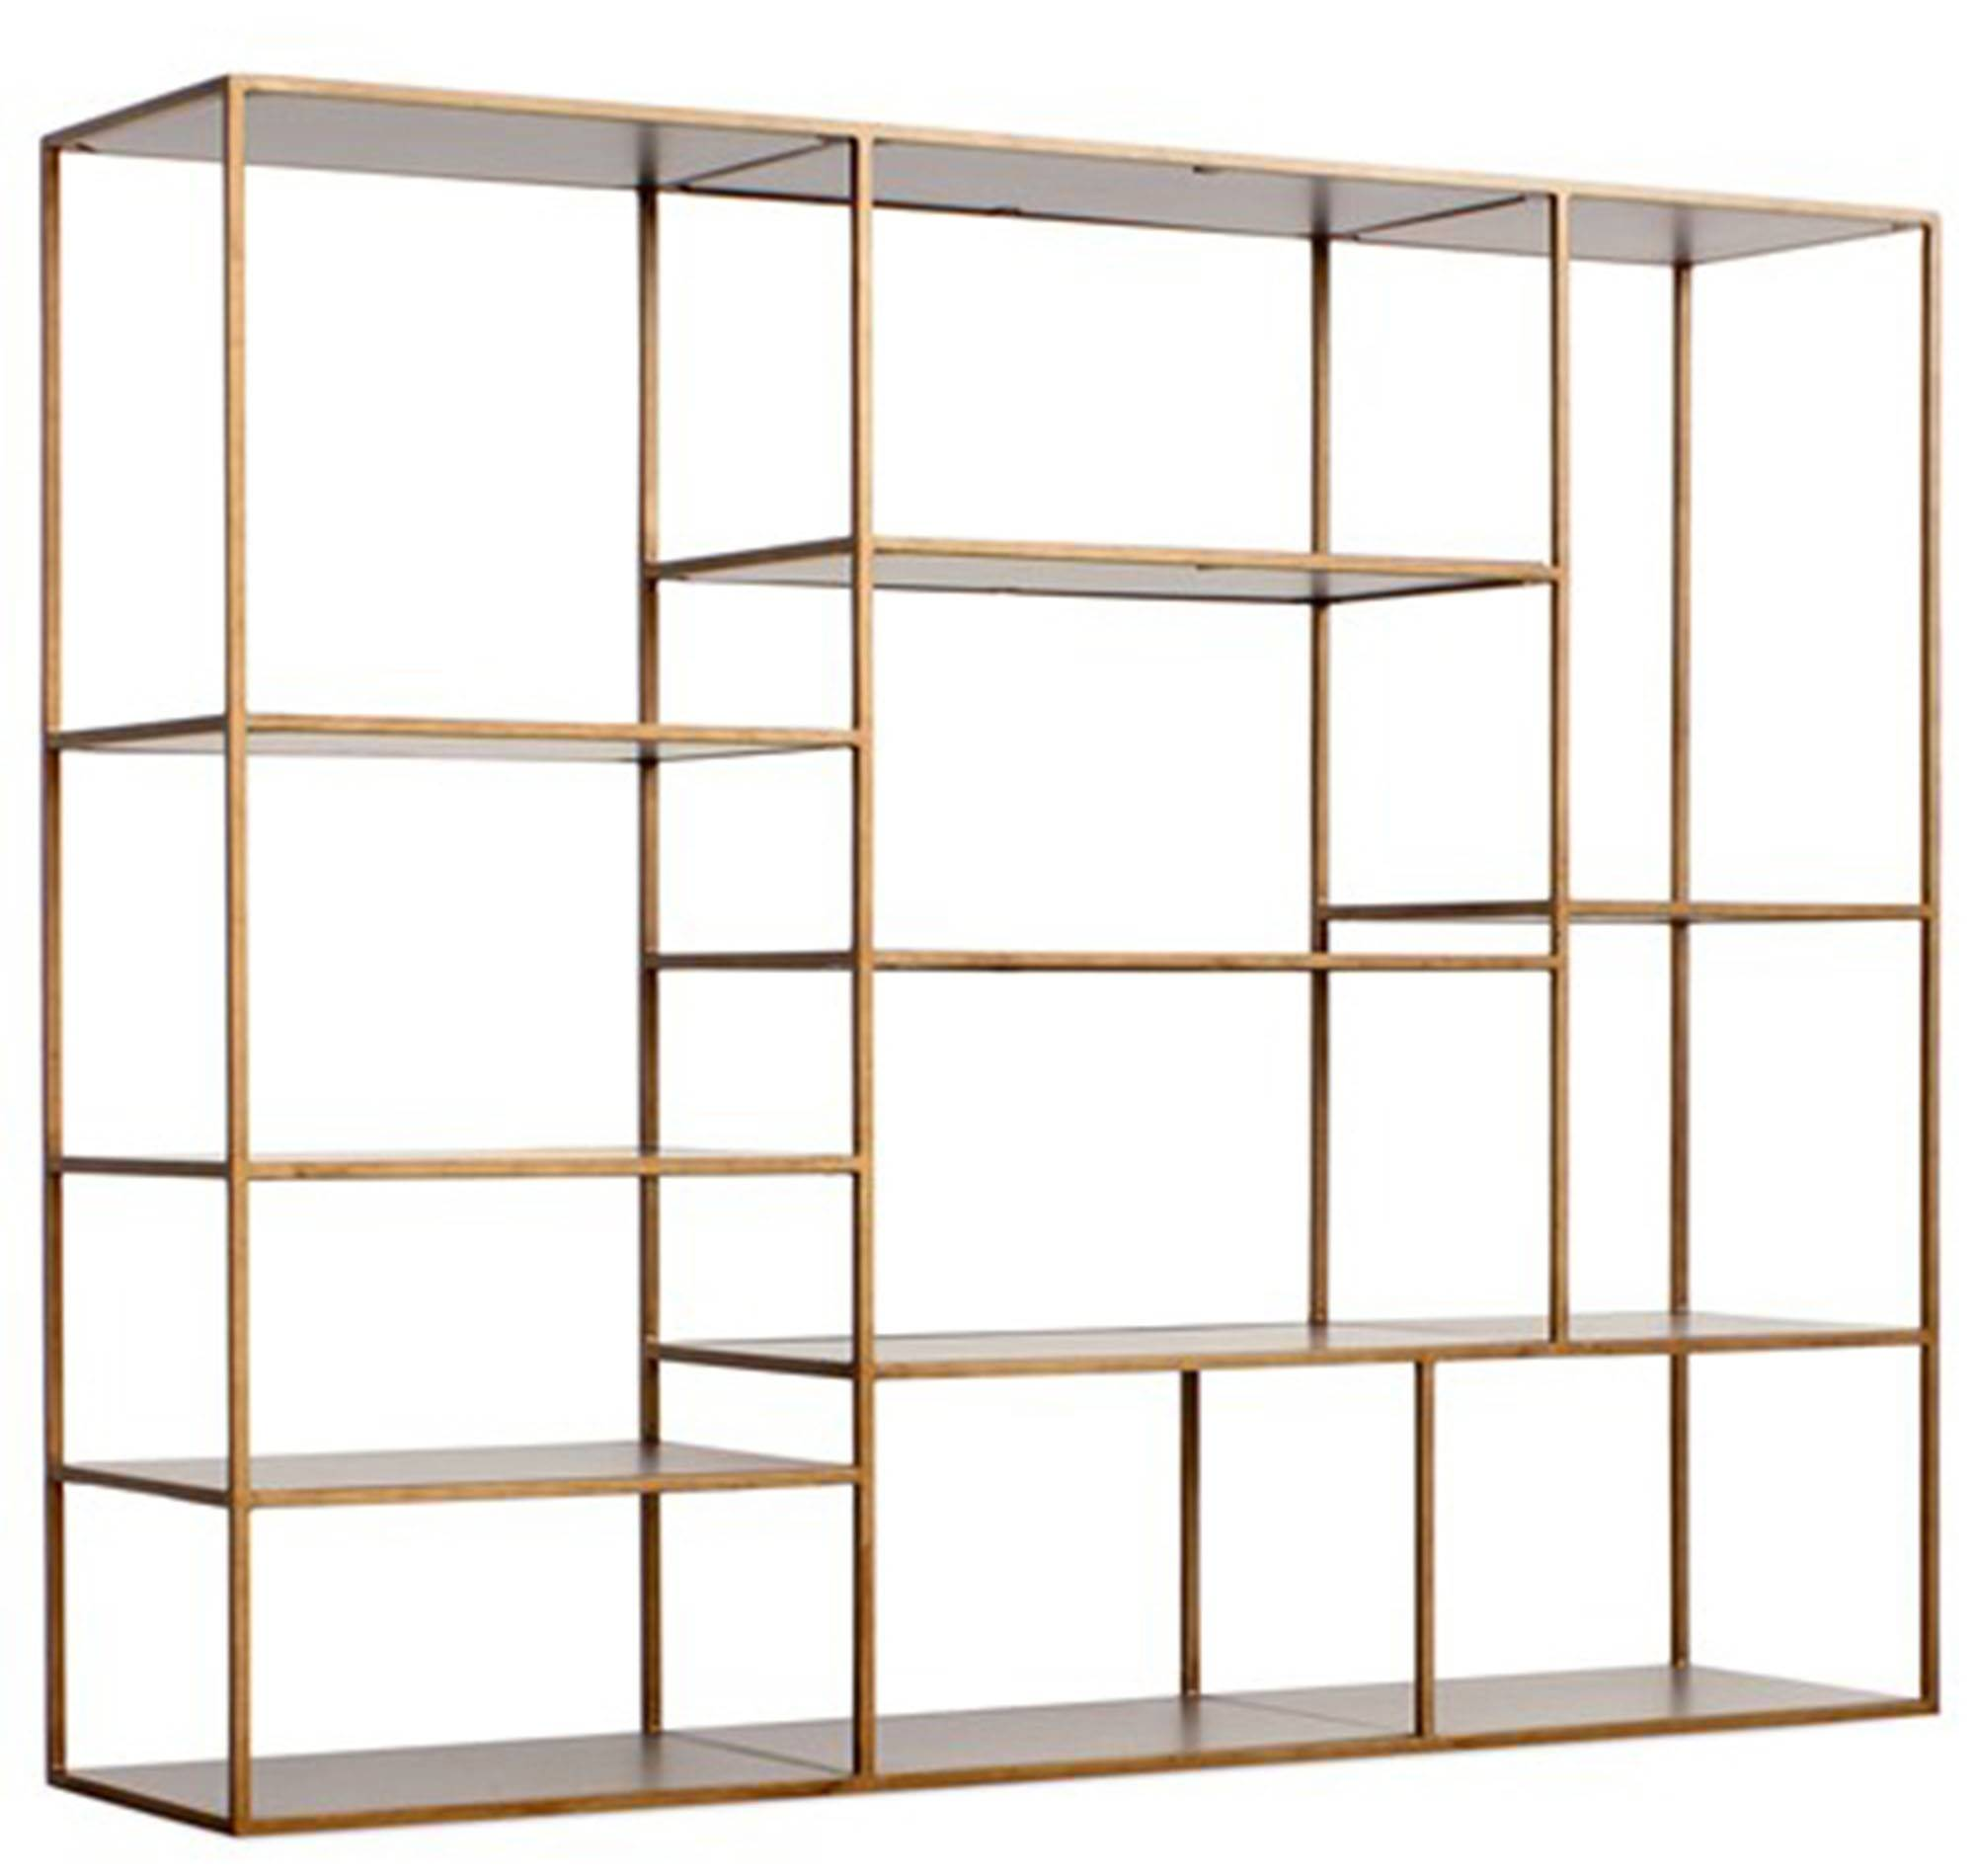 The geometric iron frames of the Emerson bookshelf by Redford House will give any room major visual impact.